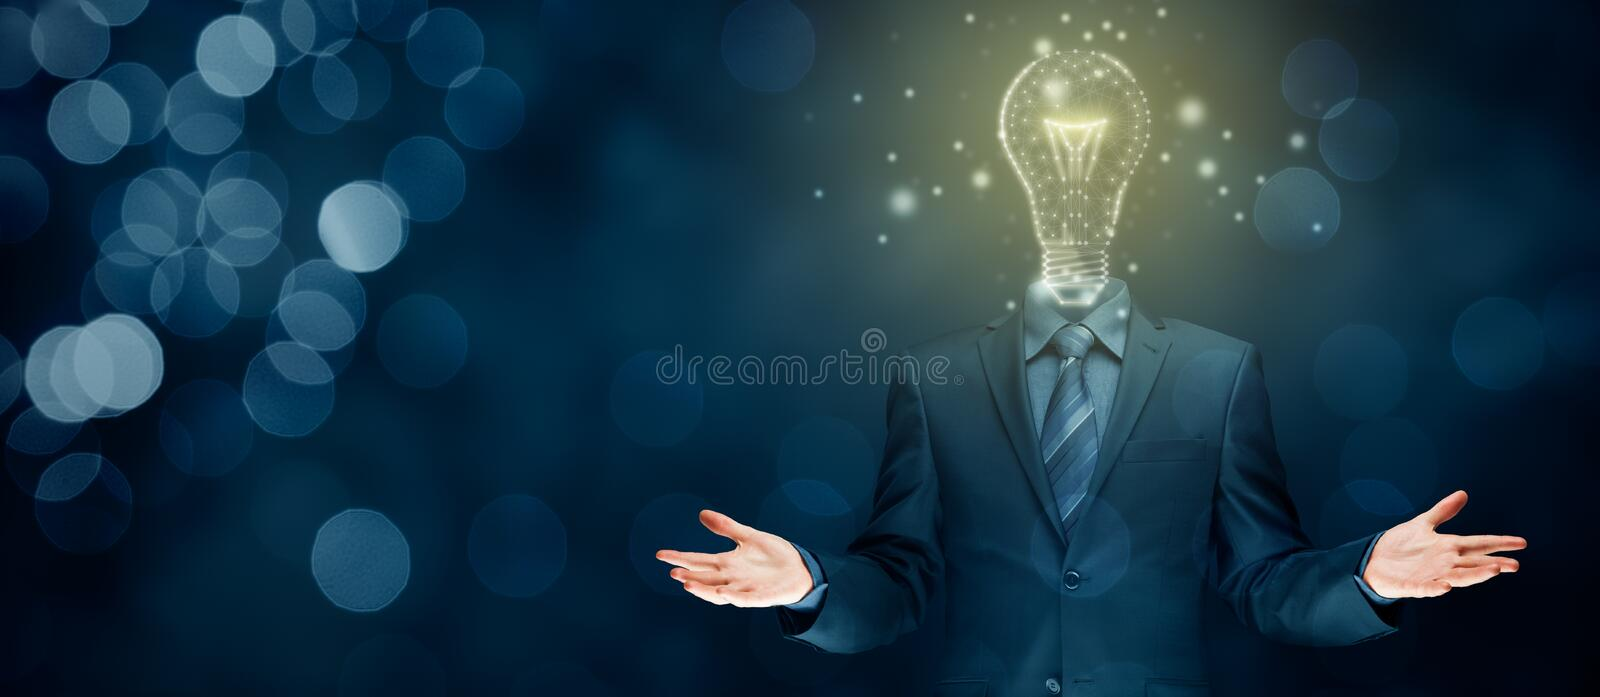 Turn on creativity, idea and intelligence concepts stock photos